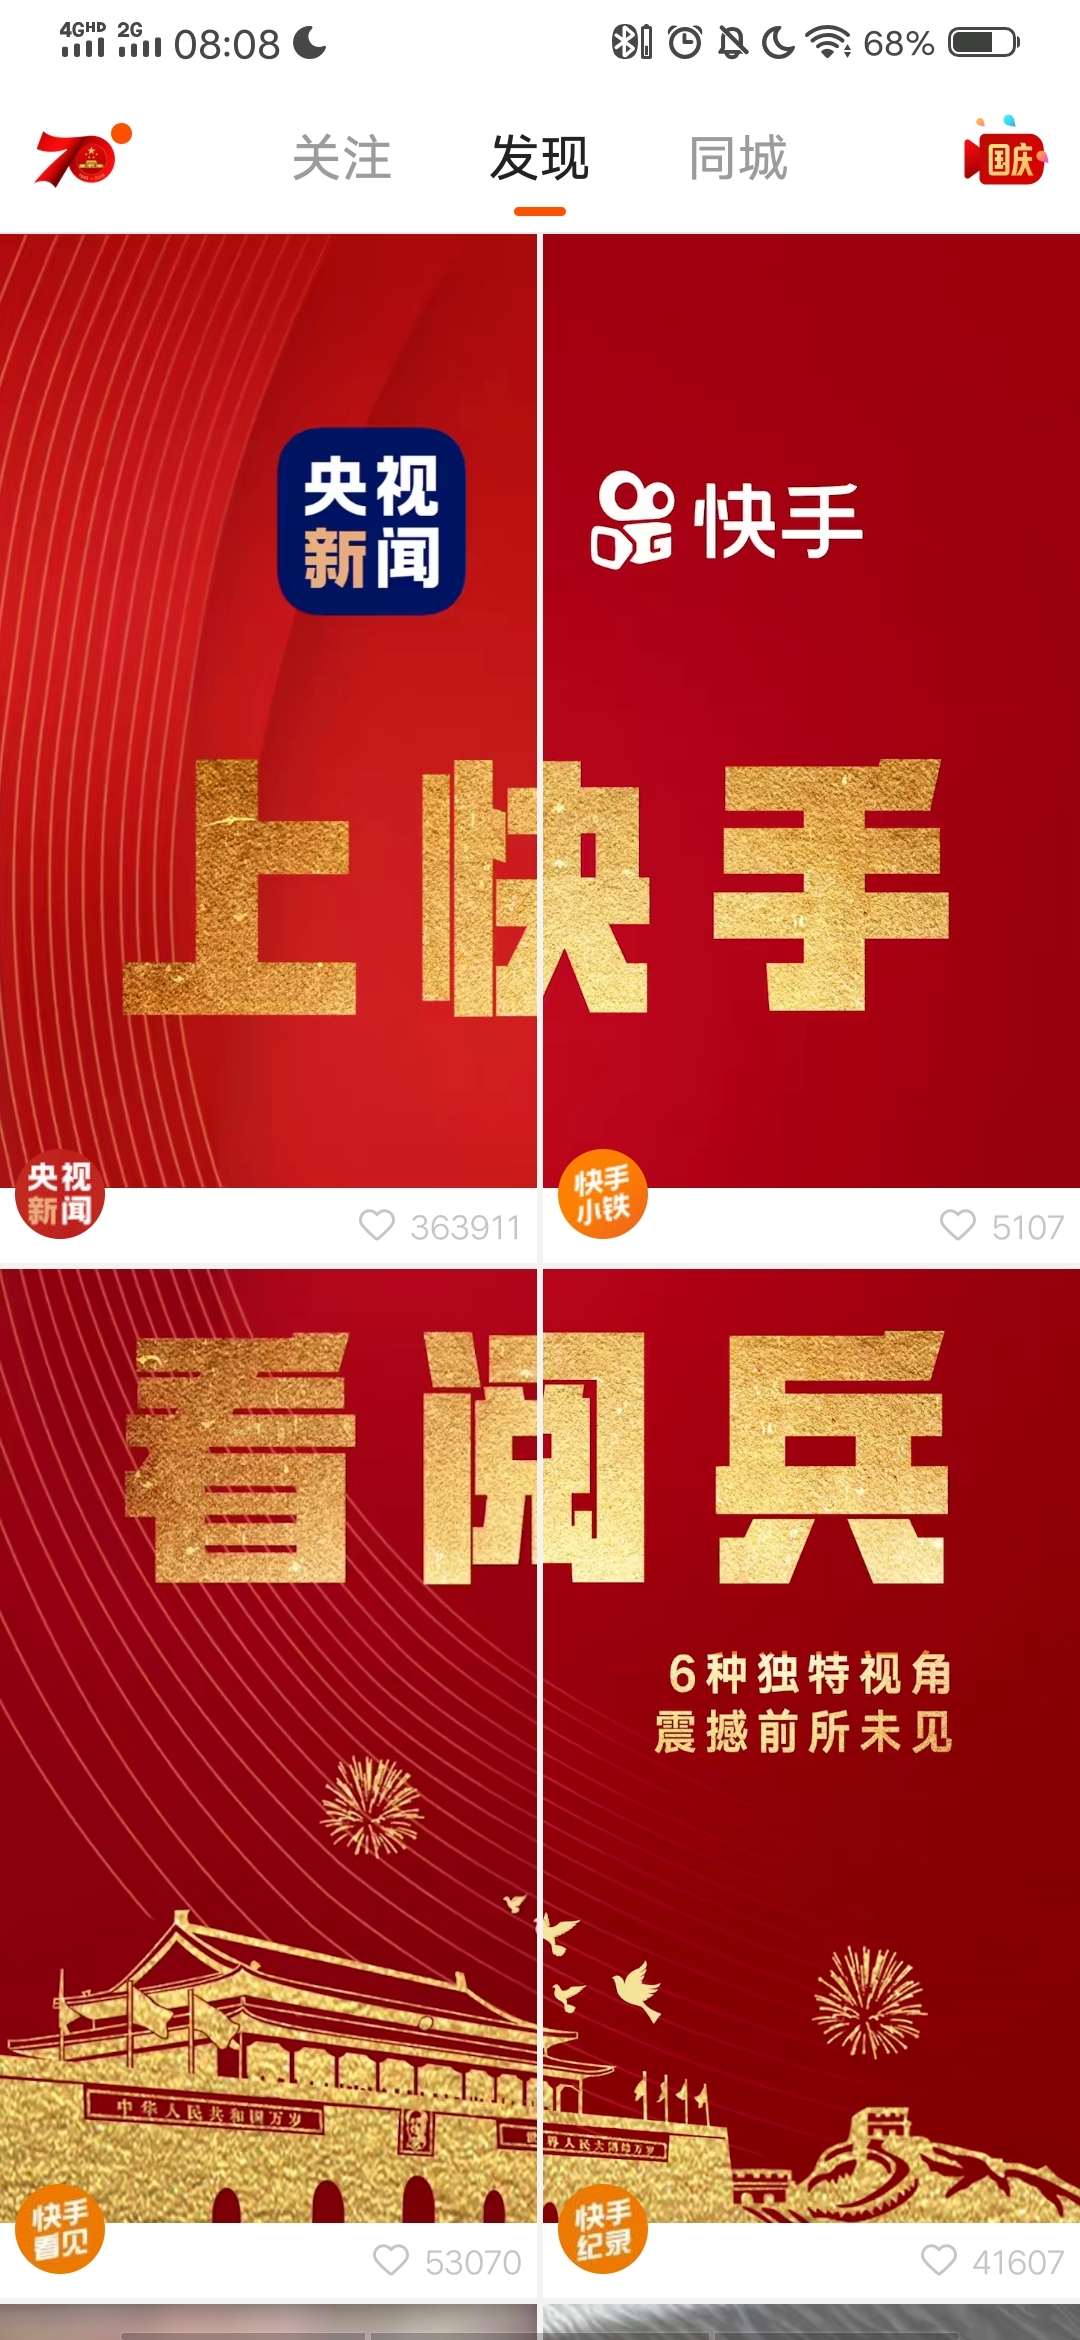 /Users/wangxuelian/Library/Containers/com.tencent.WeWorkMac/Data/Library/Application Support/WXWork/Data/1688854044307781/Cache/Image/2019-10/2073bf8bac6179e7e8aa5c96e176467e(1).jpg